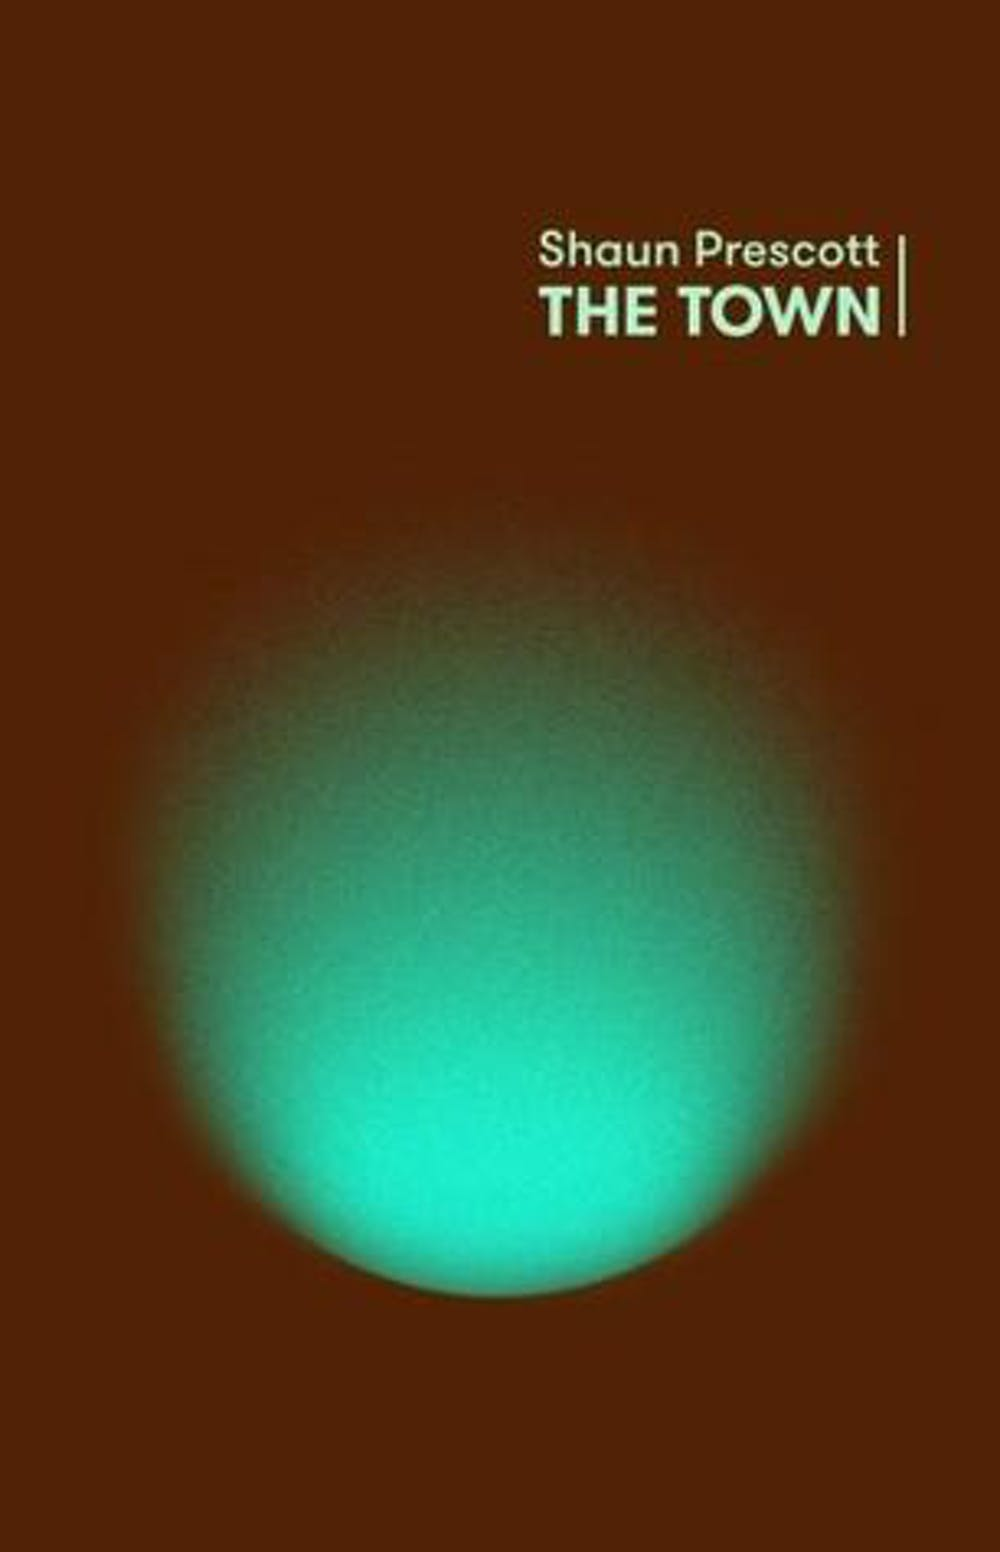 Rights to The Town, published by Brow Books, have been sold to Faber &  Faber in Britain and Farrar, Straus & Giroux in the US among other  publishers.